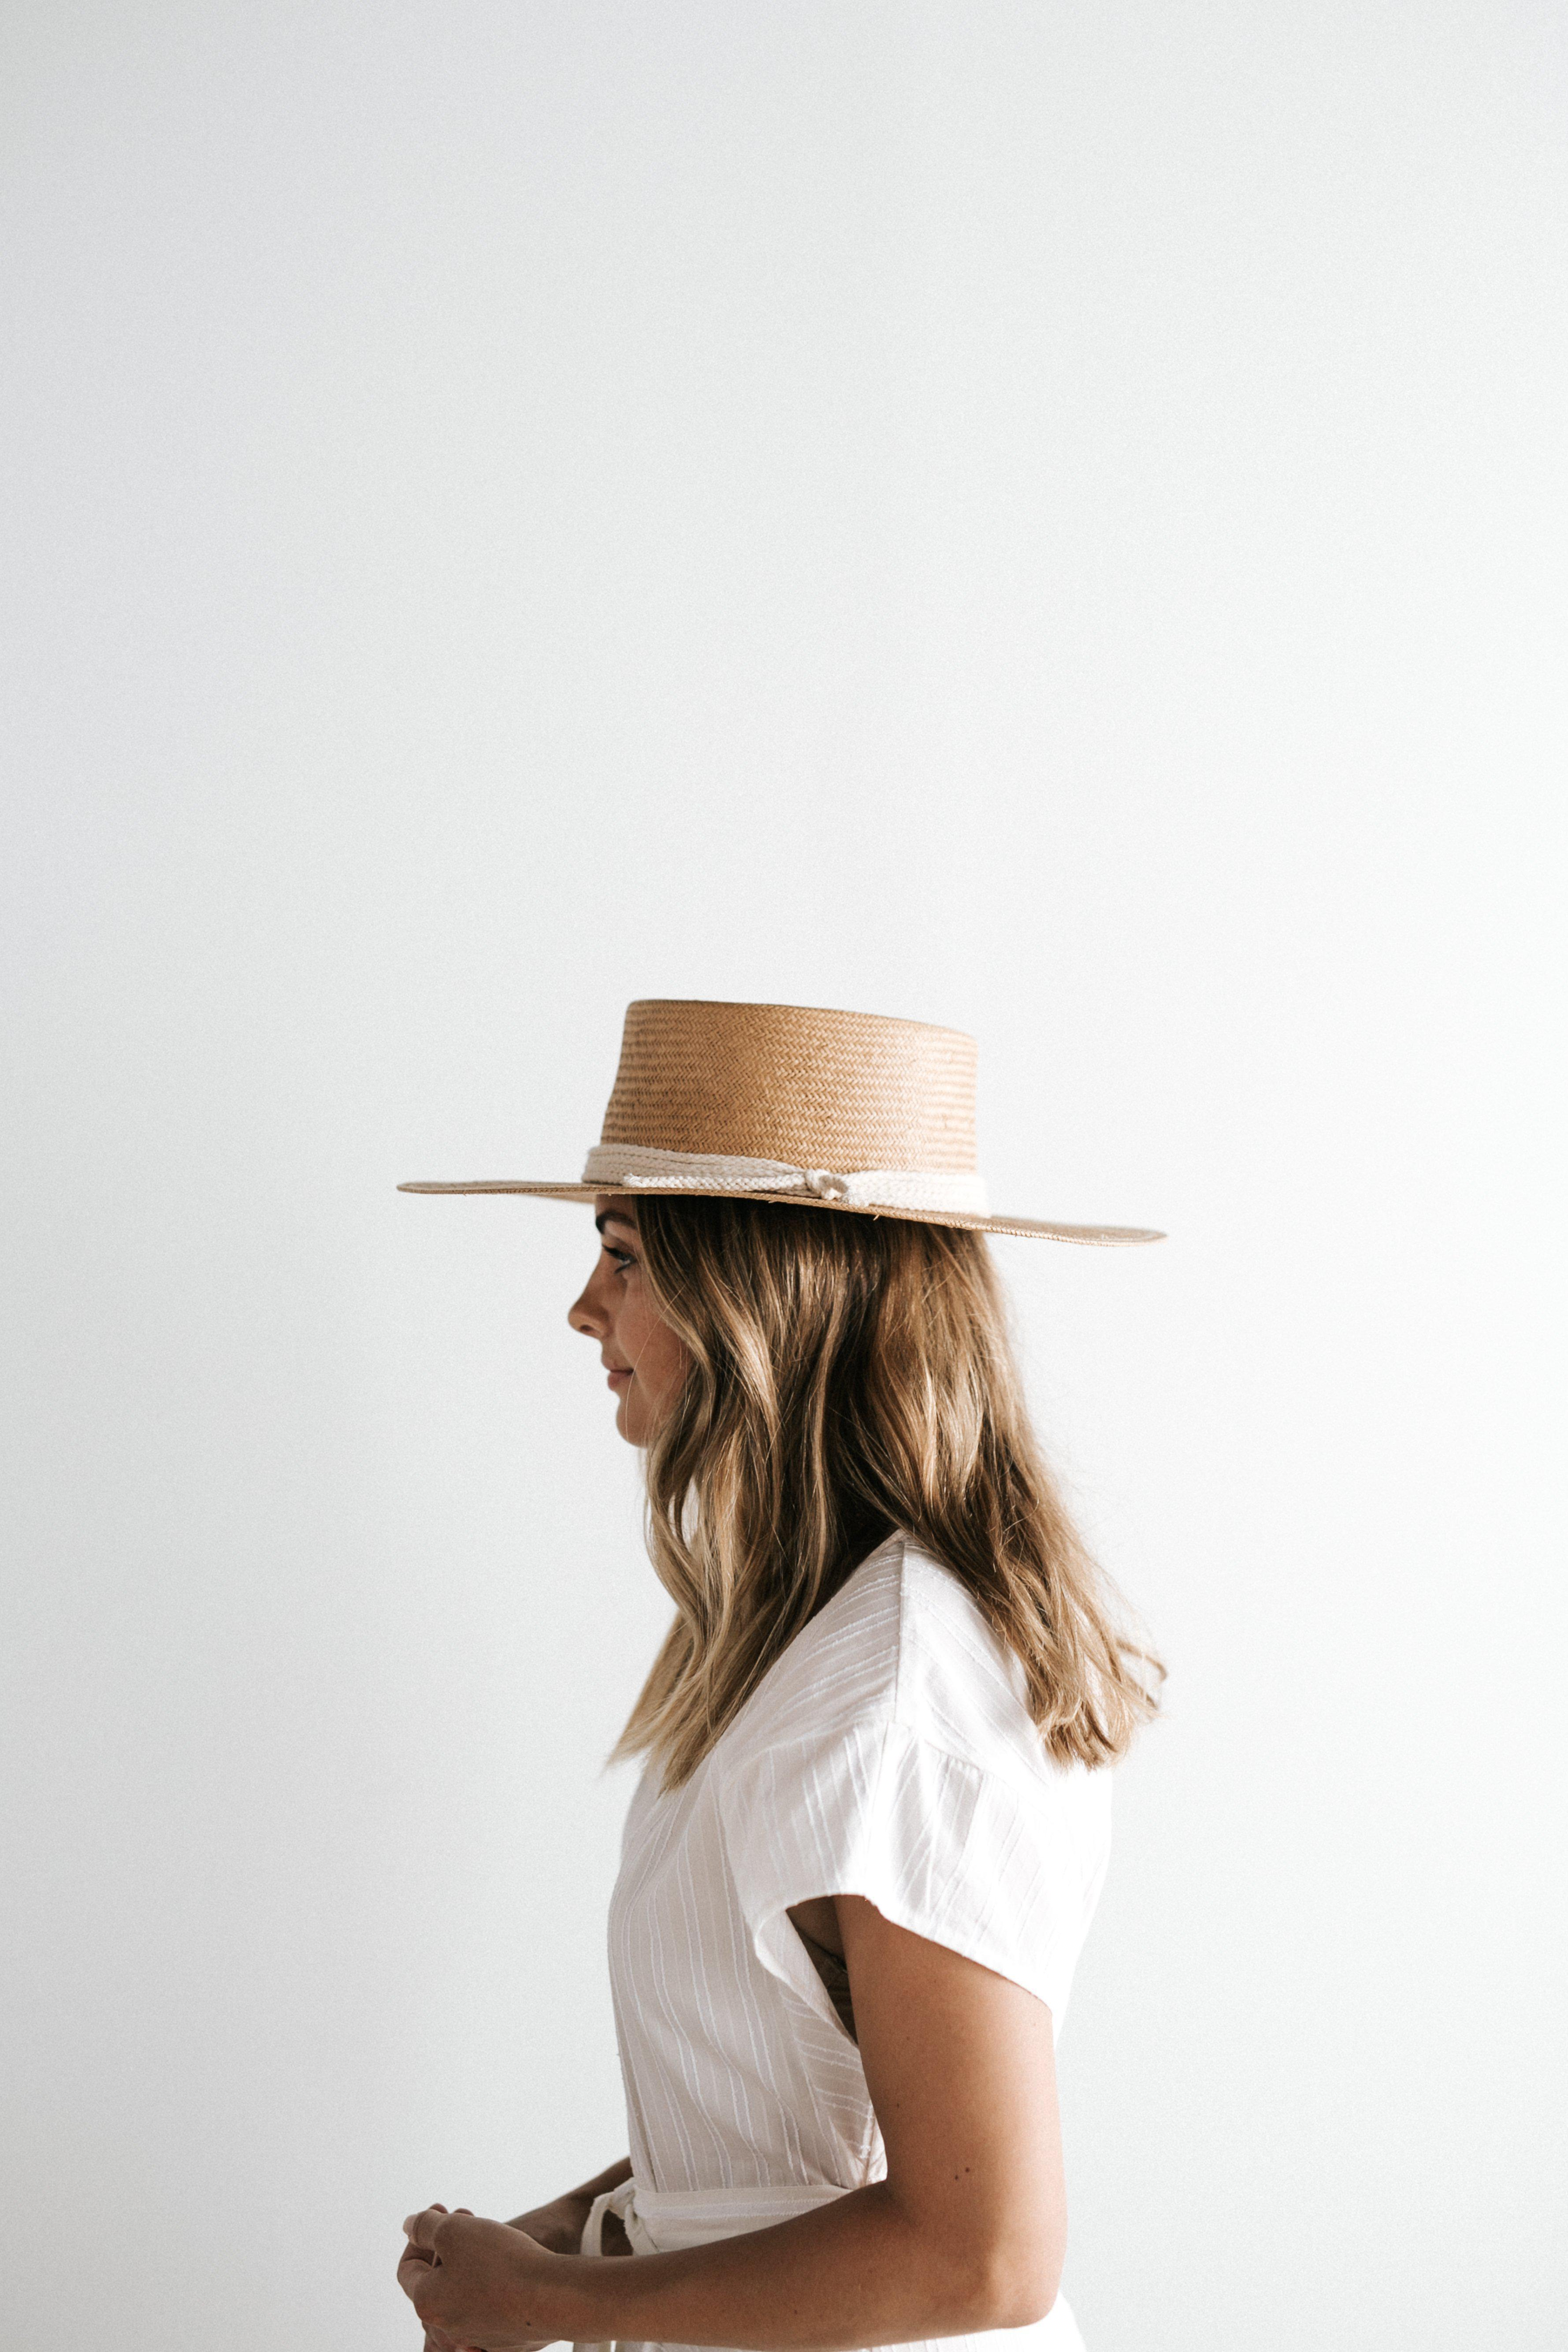 THE BRE NATURAL - STIFF STRAW PORK PIE HAT - GIGI PIP